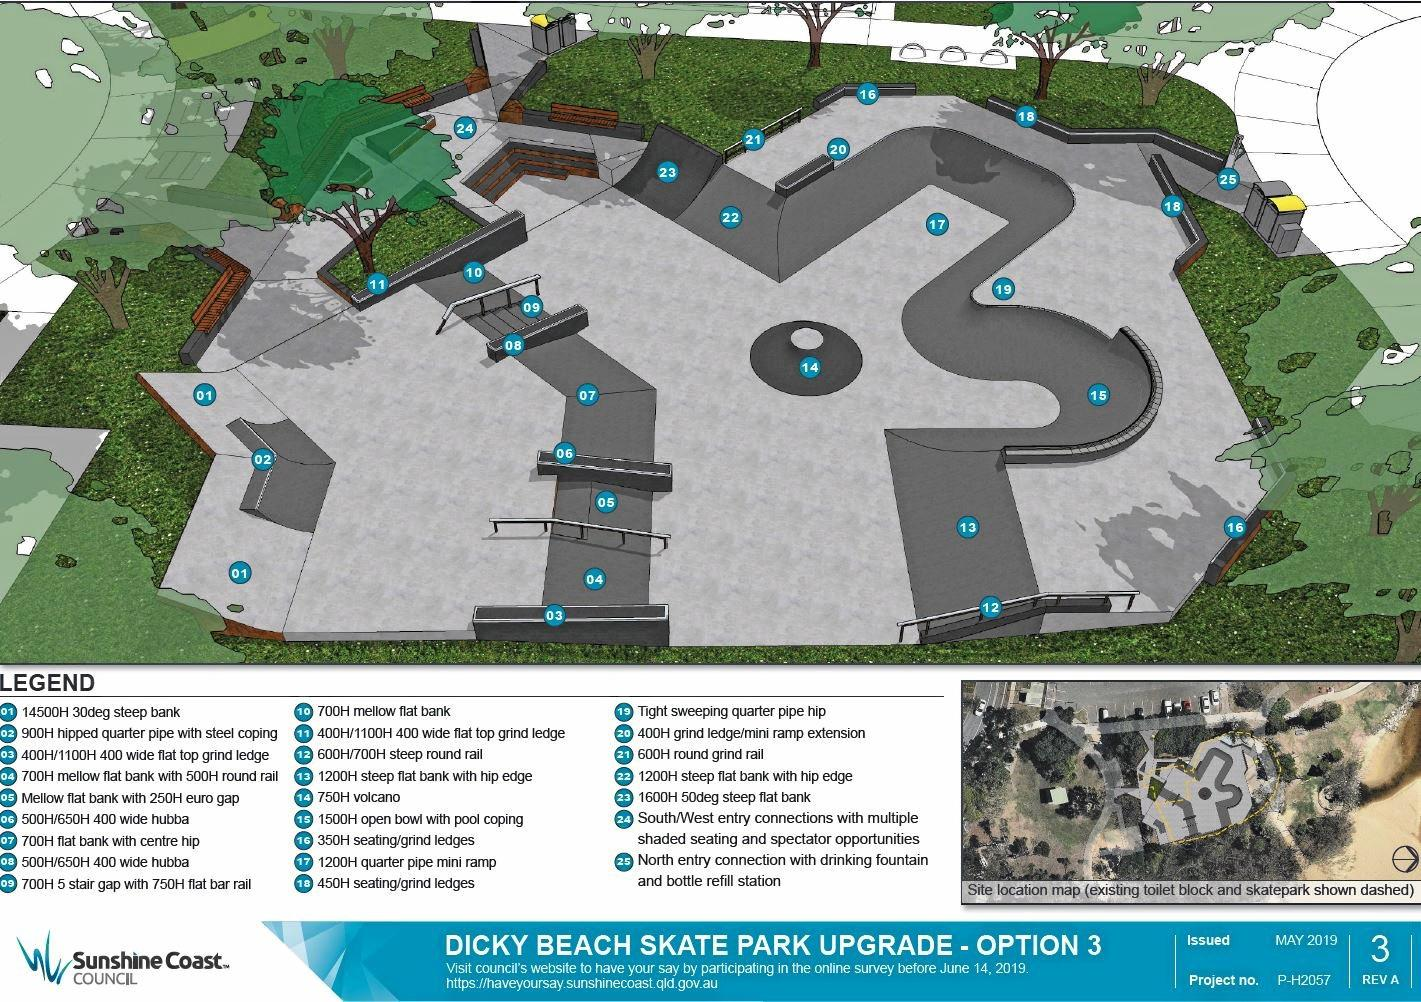 Community feedback is being sought for the new popular Dicky Beach skate park, revived by Sunshine Coast Council. Option 3